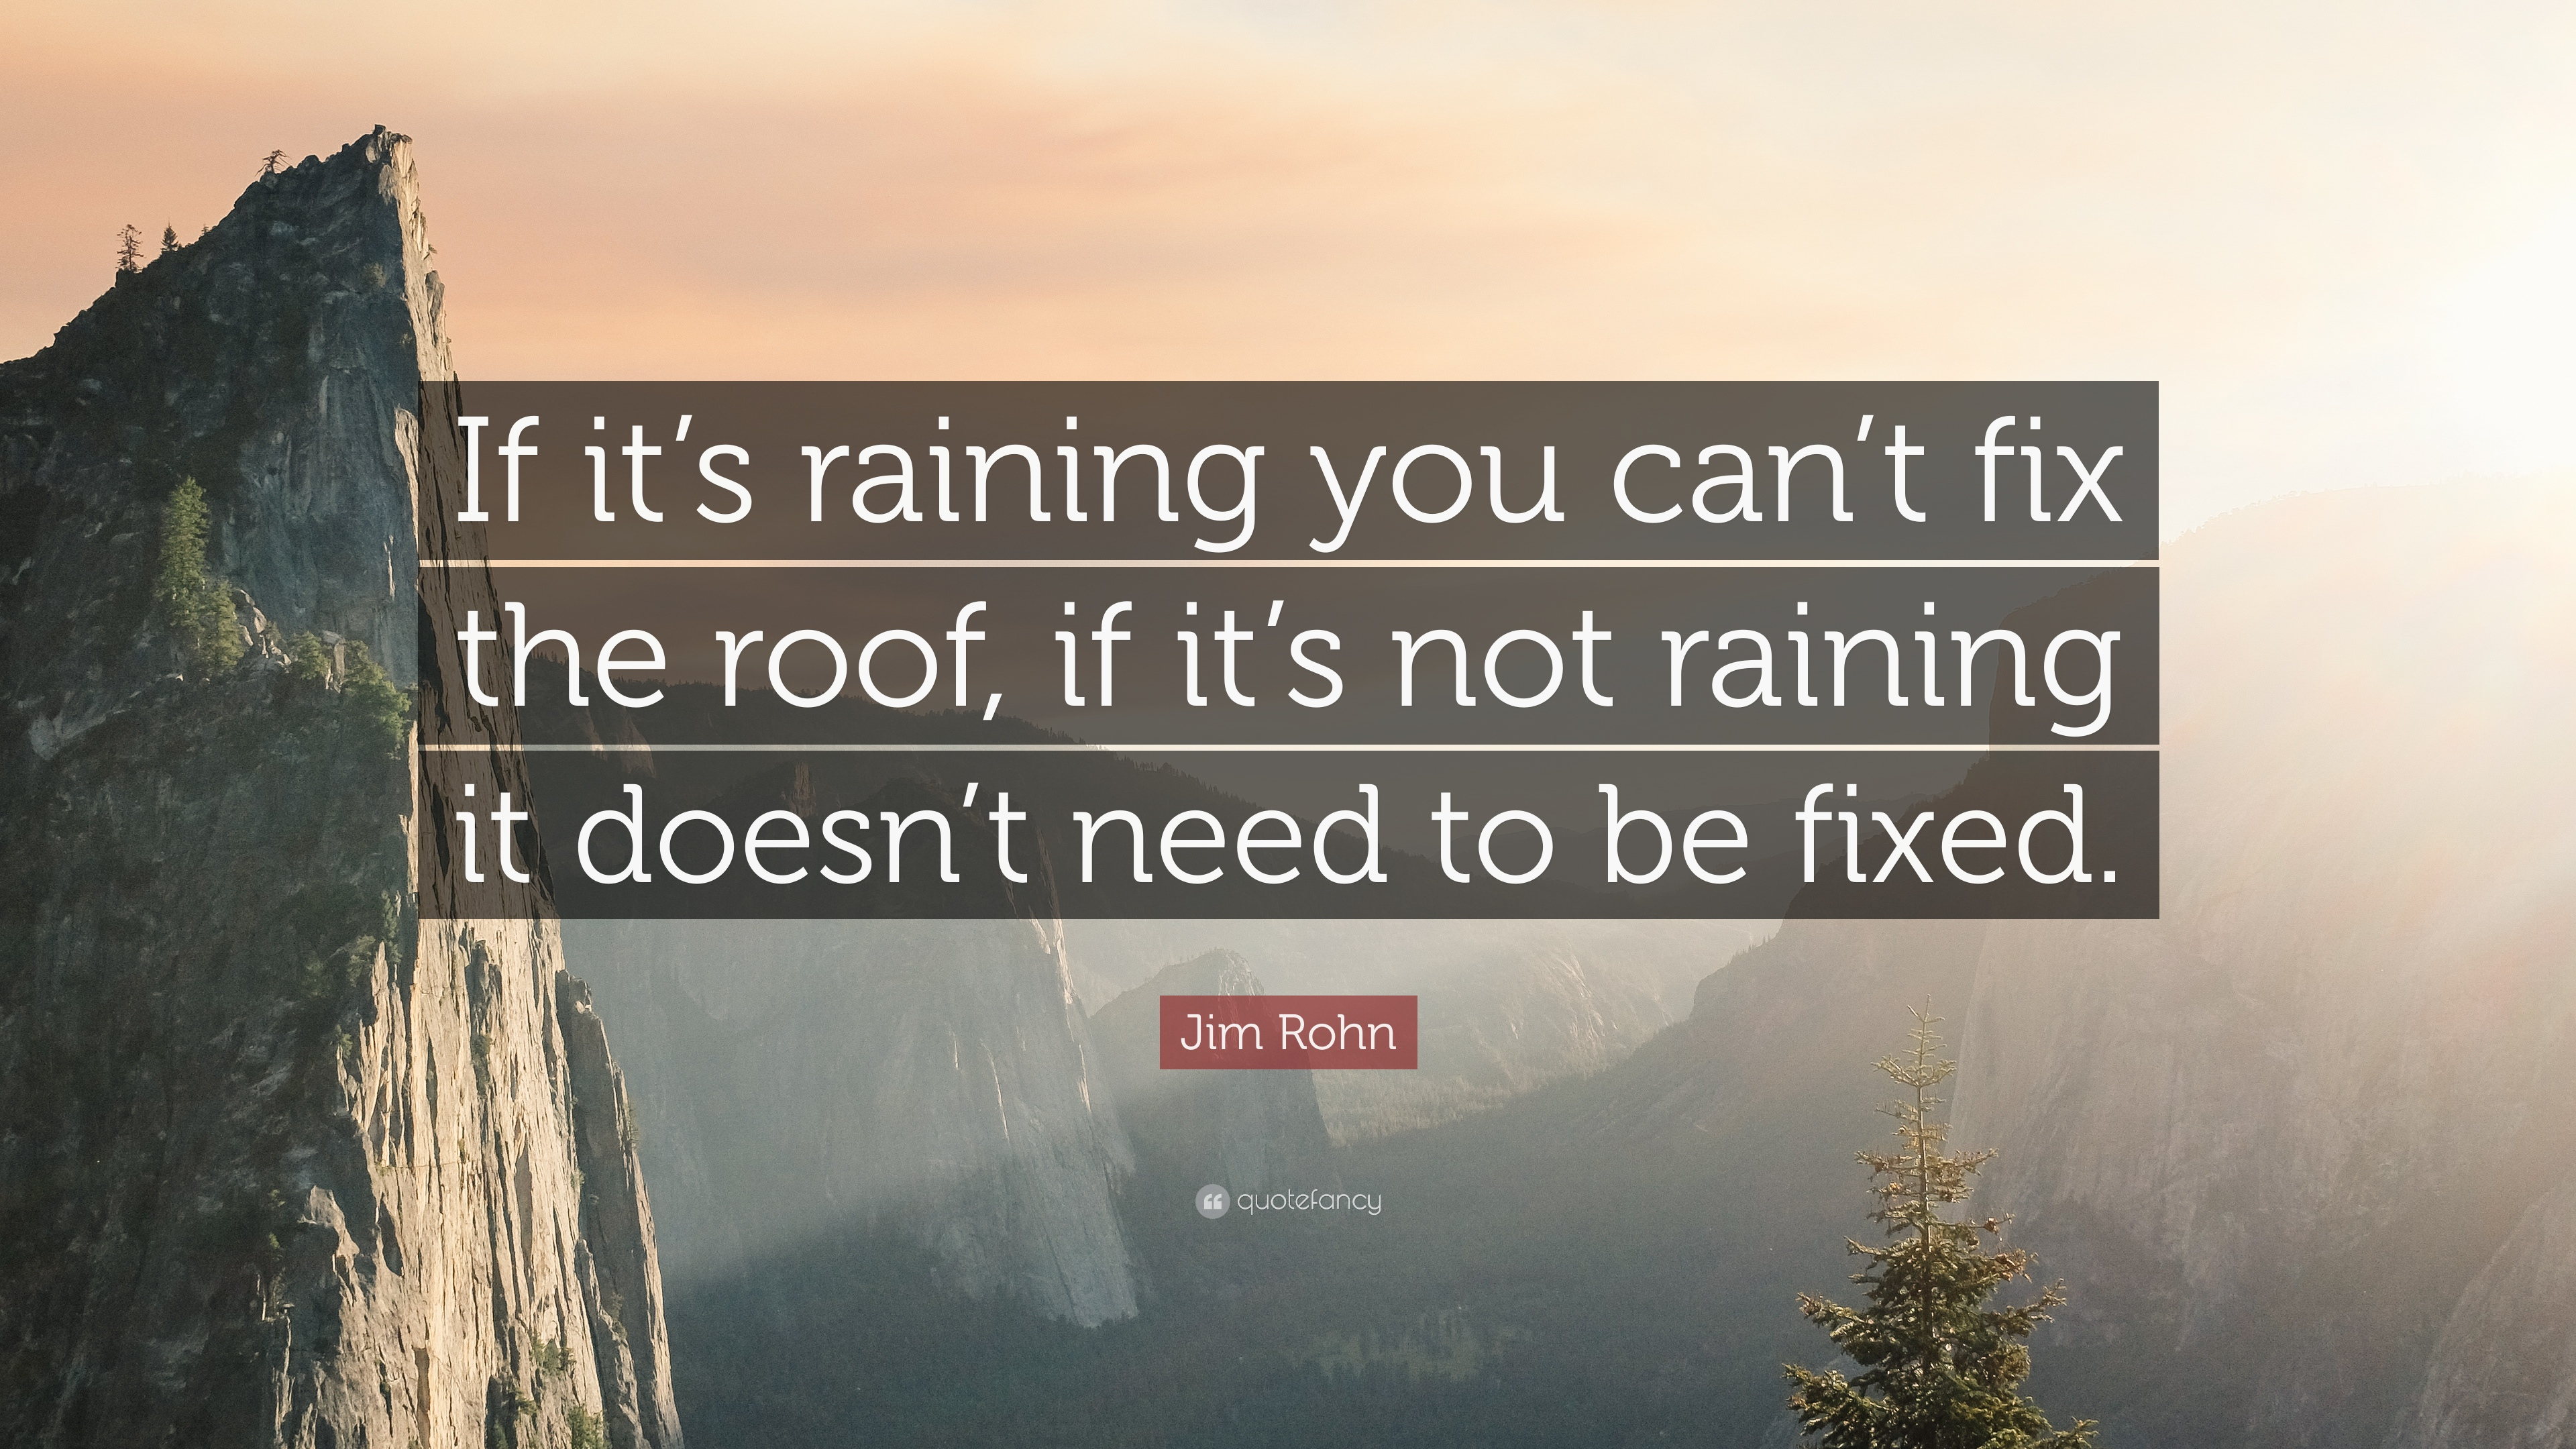 https://quotefancy.com/media/wallpaper/3840x2160/98110-Jim-Rohn-Quote-If-it-s-raining-you-can-t-fix-the-roof-if-it-s-not.jpg